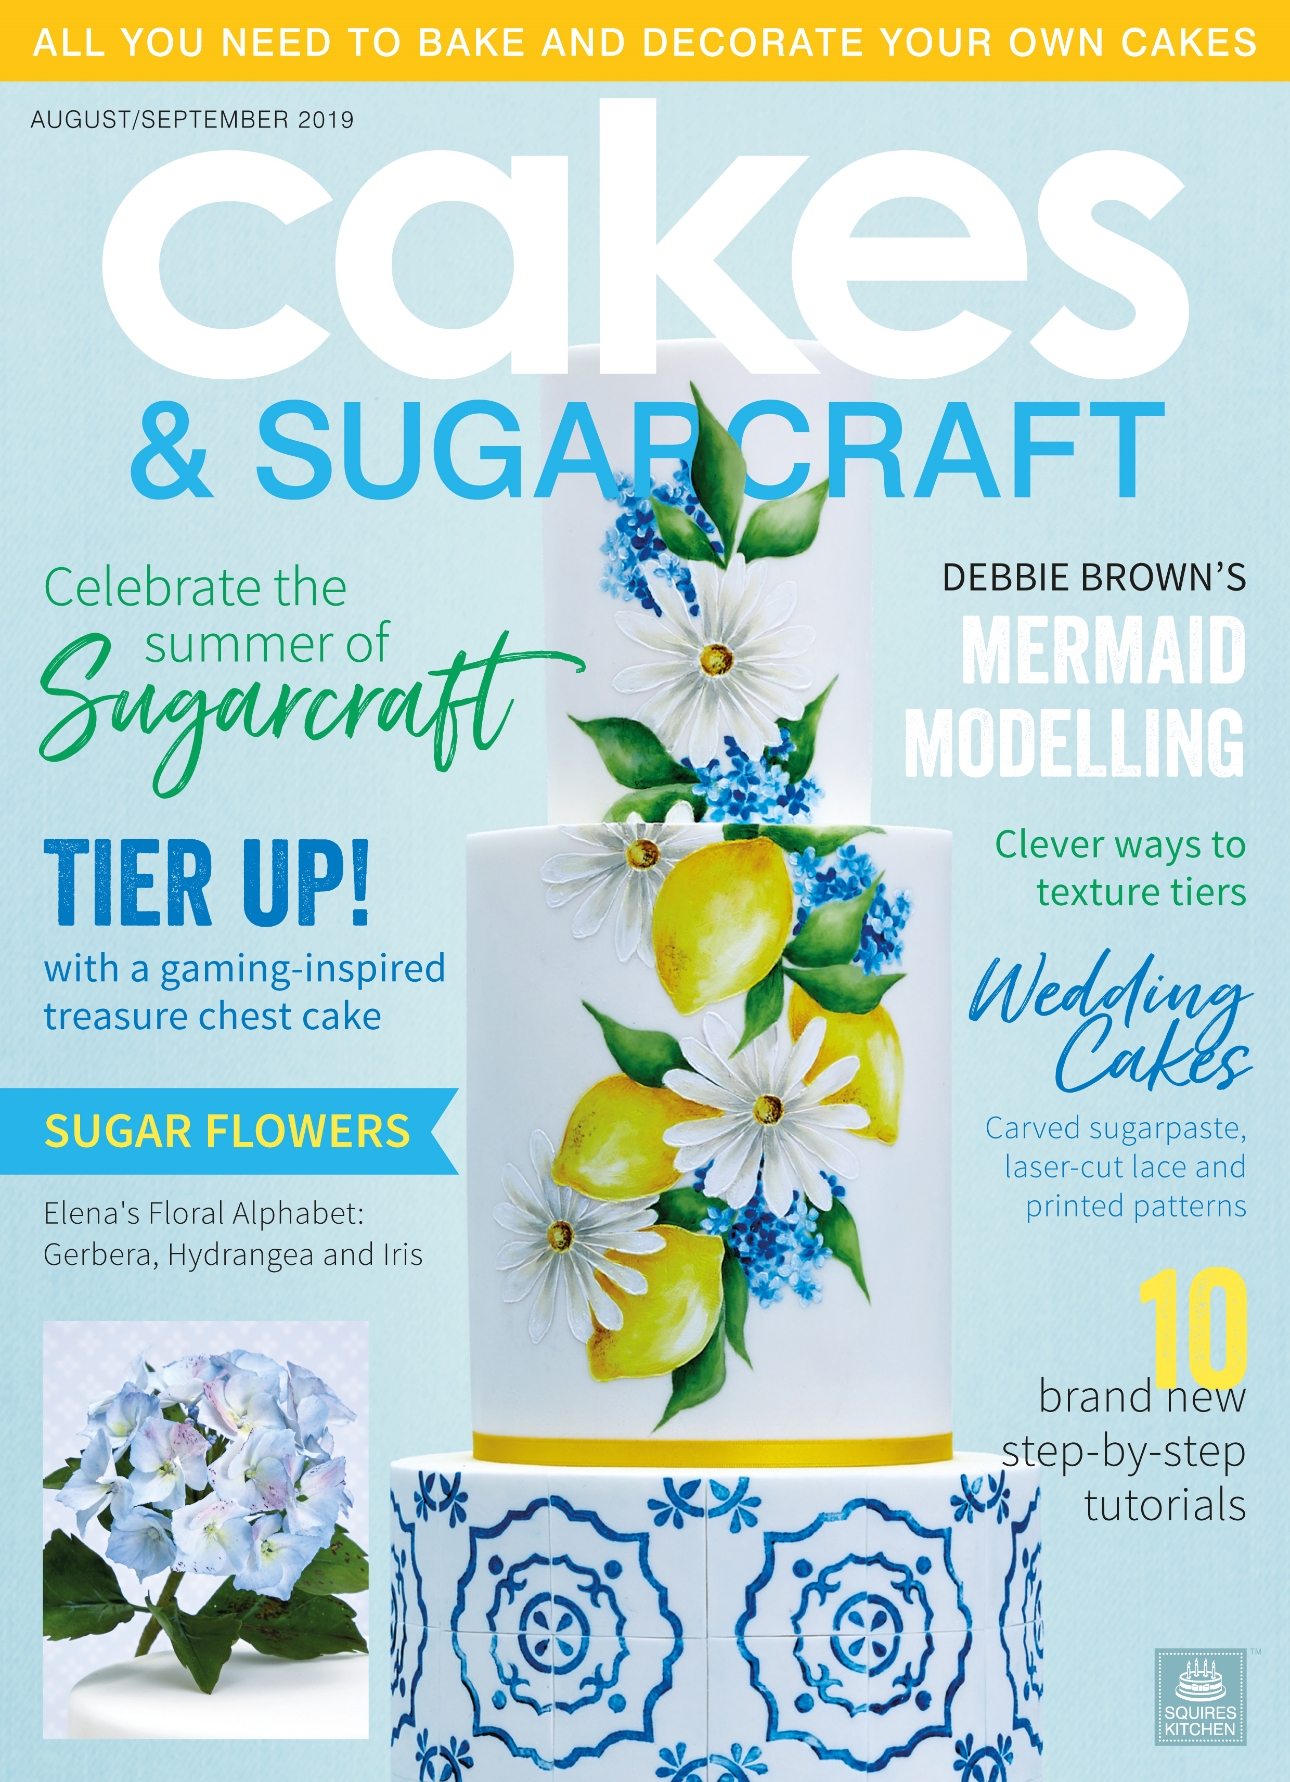 emily hankins cakes and sugarcraft front cover hand painted cake.png